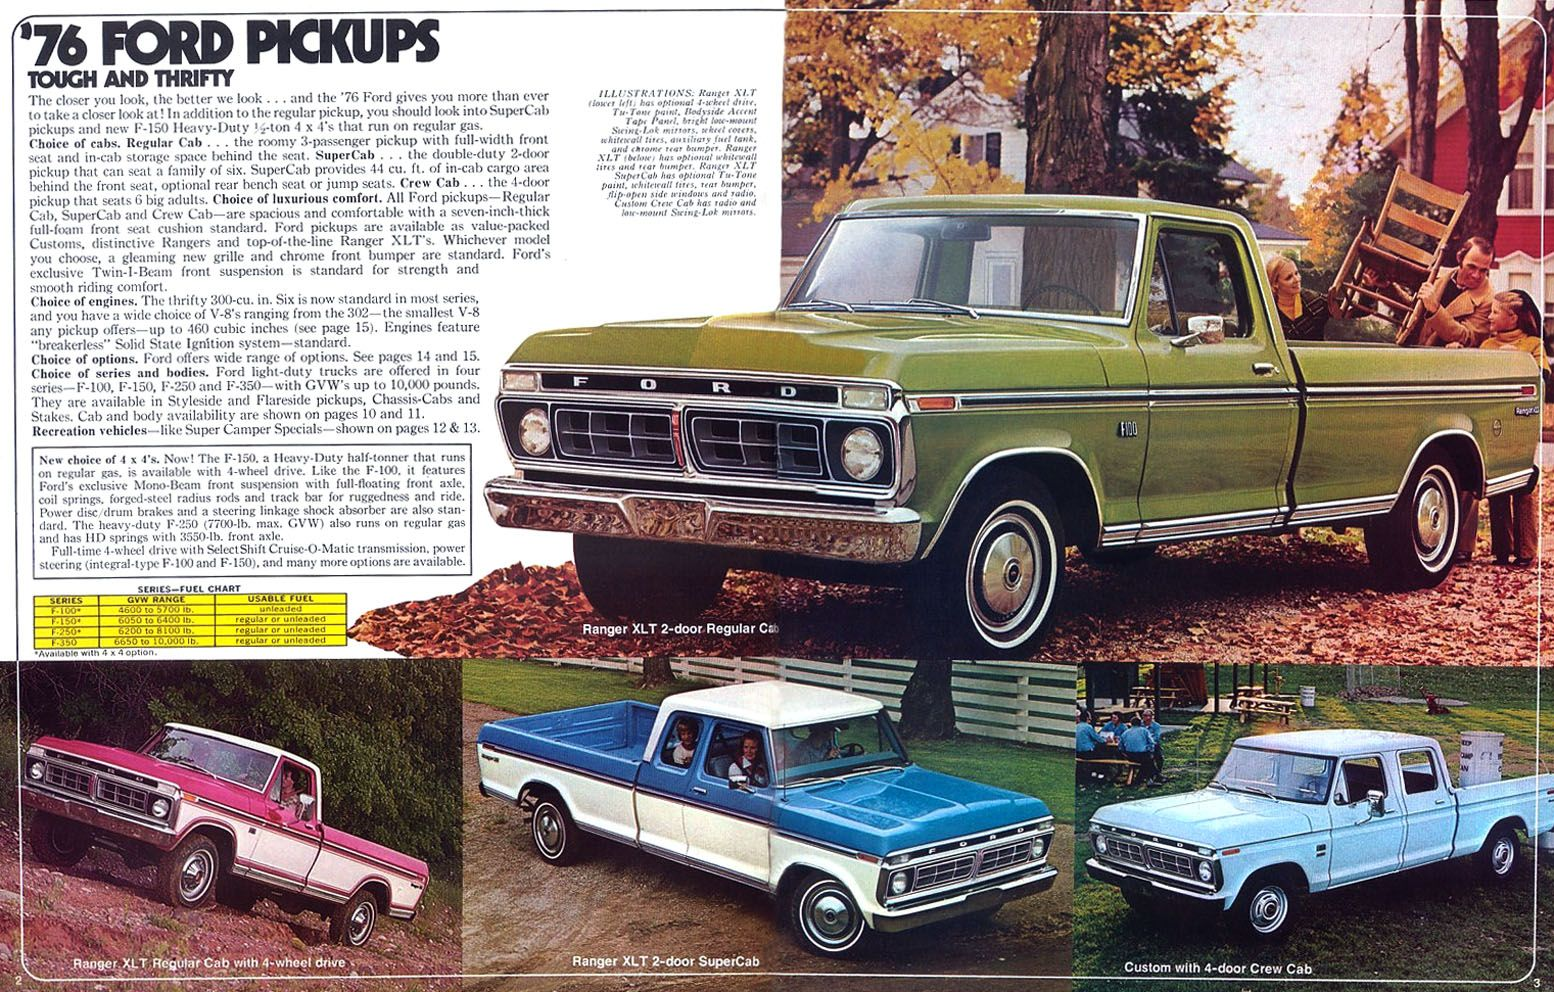 Ford truck sales literature, 1976. | Classic workhorses | Pinterest ...